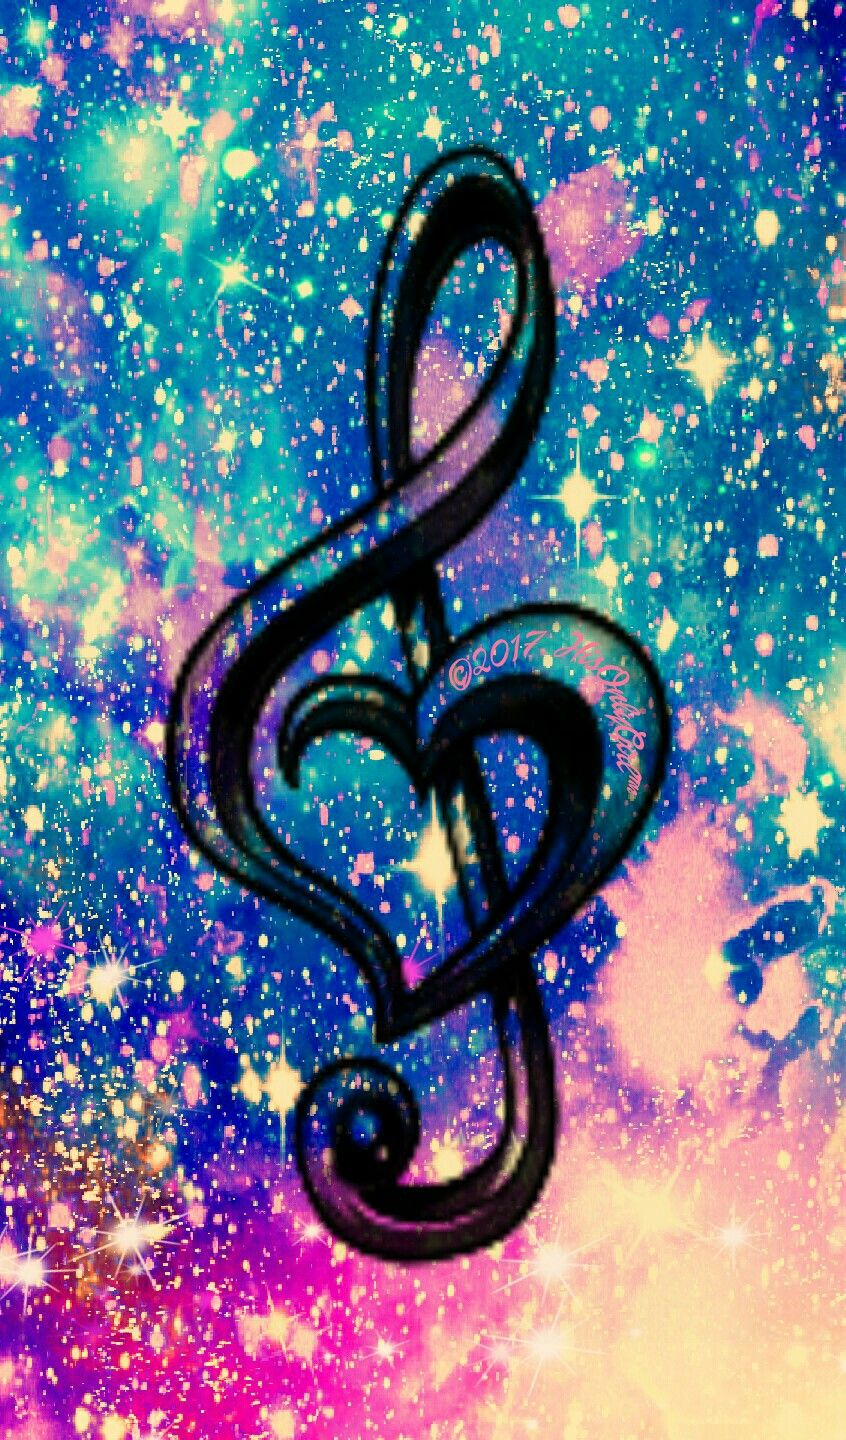 Love music galaxy wallpaper I created for the app CocoPPa! | Backgrounds | Galaxy wallpaper ...